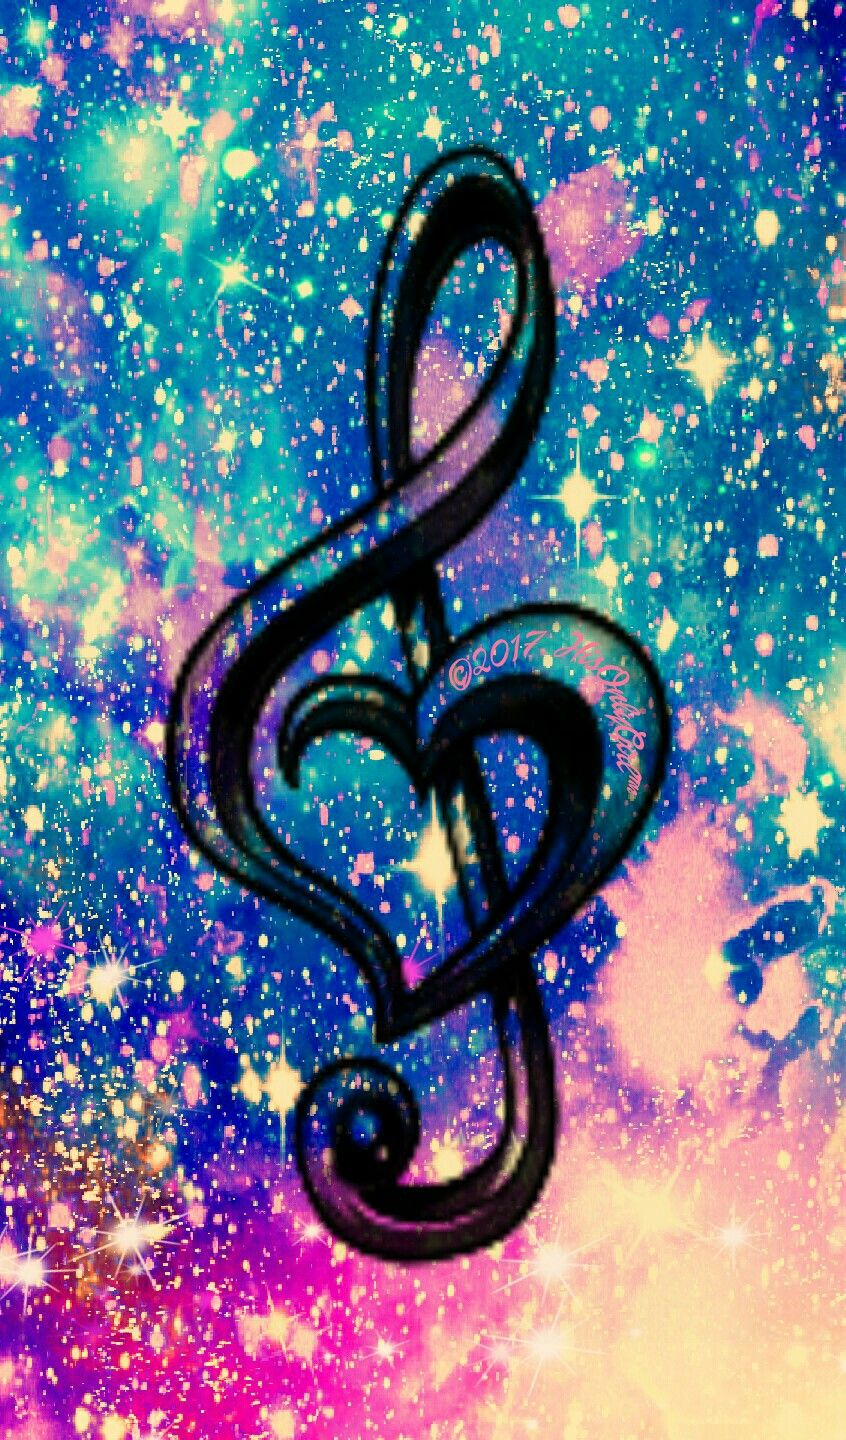 Love music galaxy wallpaper I created for the app CocoPPa! | Backgrounds | Galaxy wallpaper ...